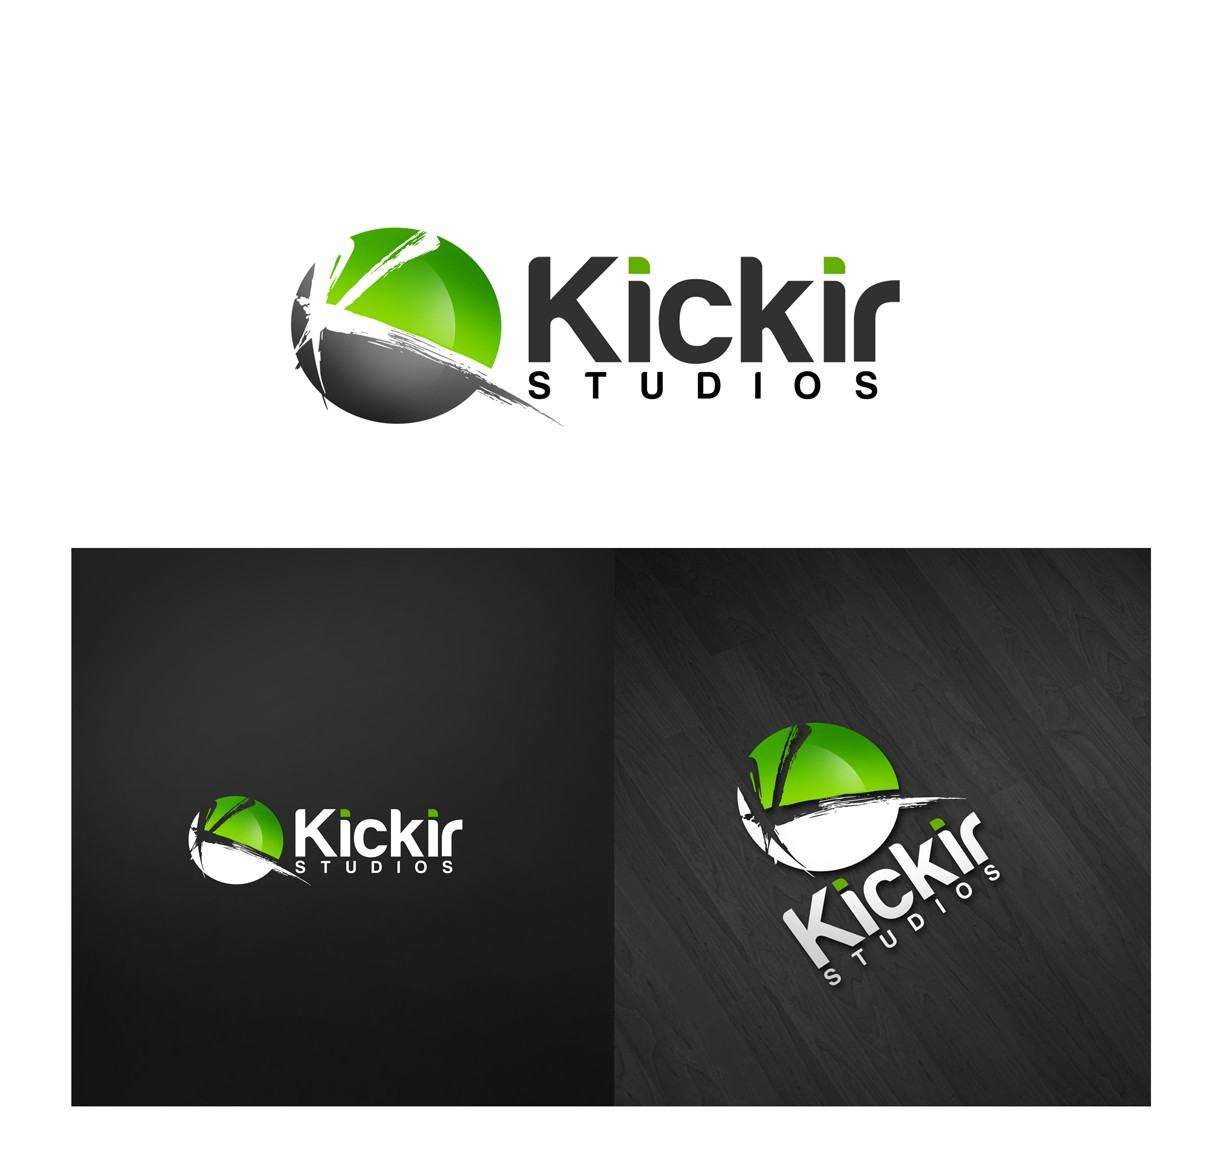 New logo for Kickir Studios